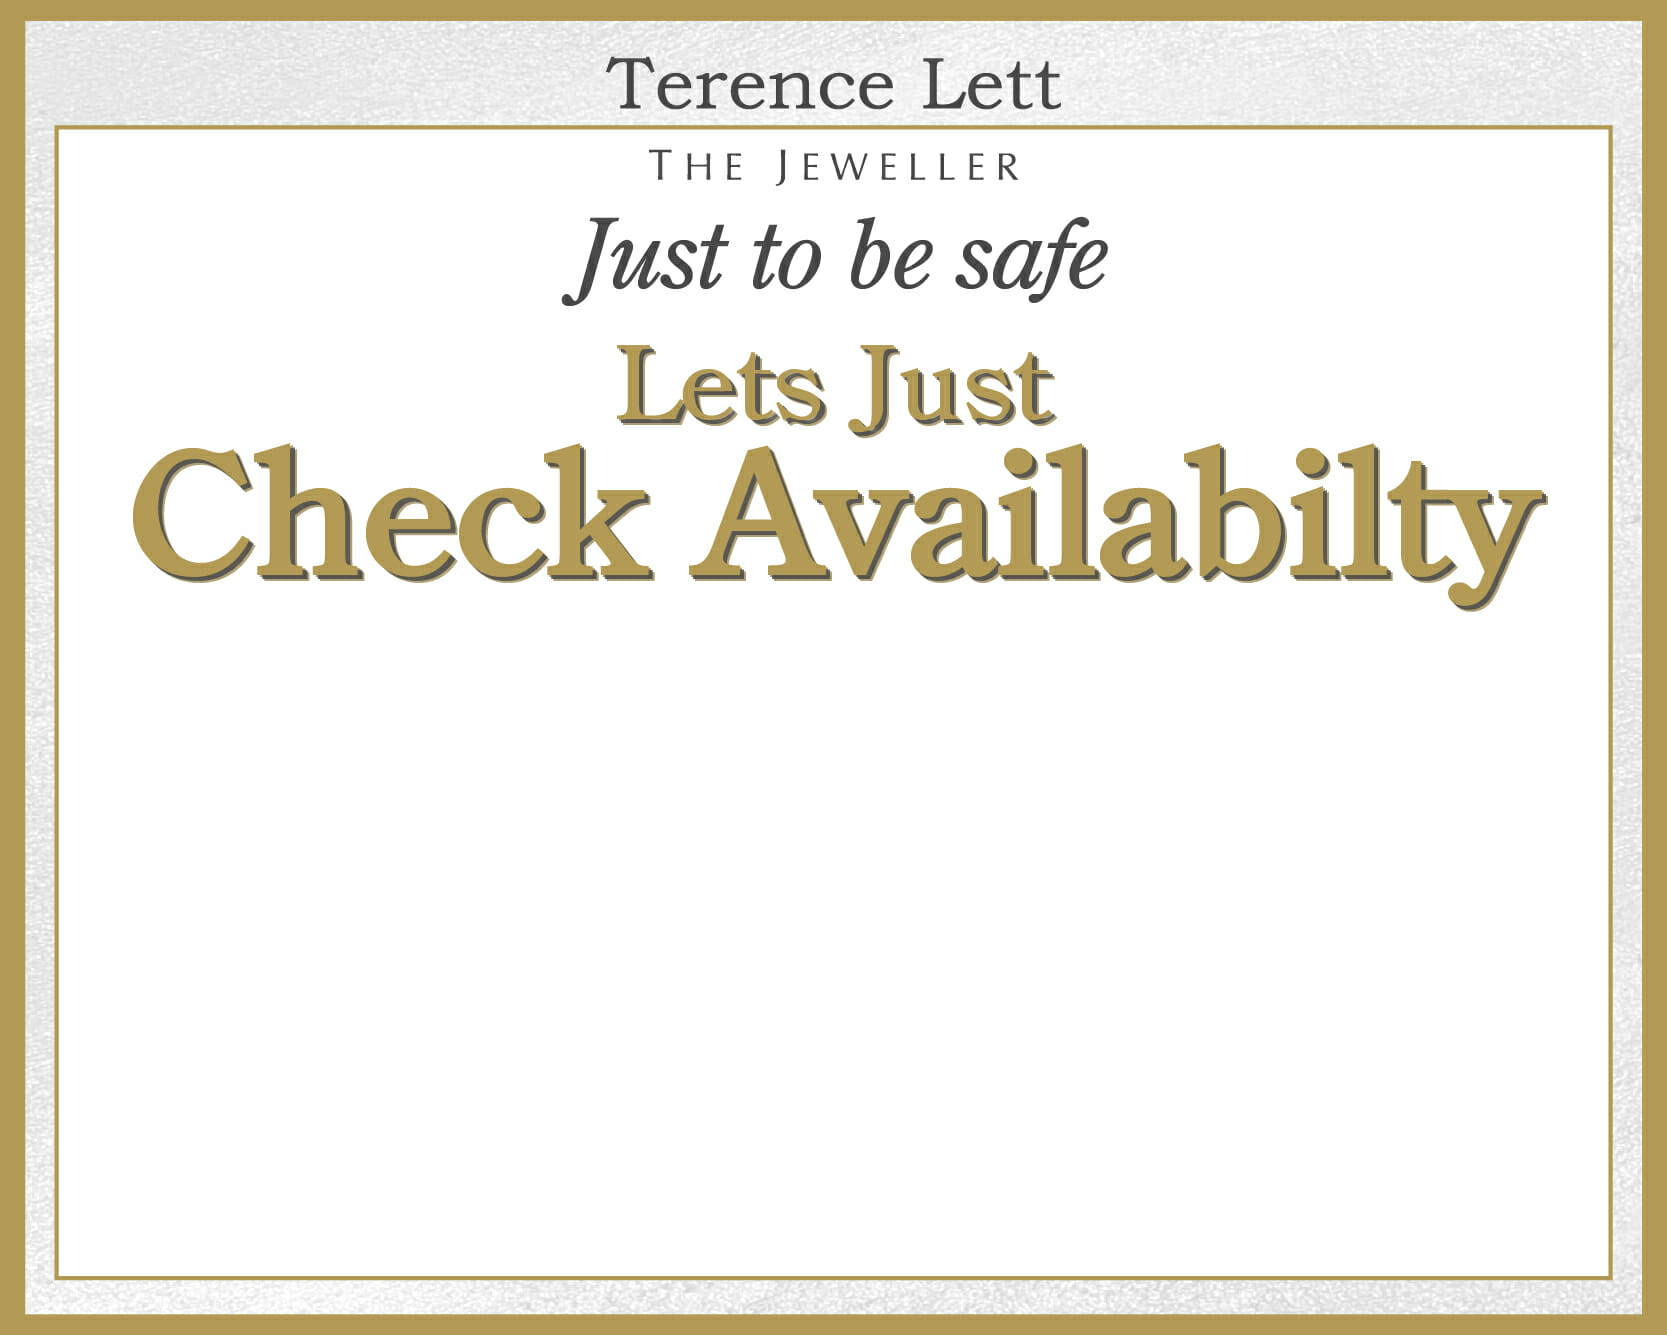 Out of stock - Terence Lett The Jeweller